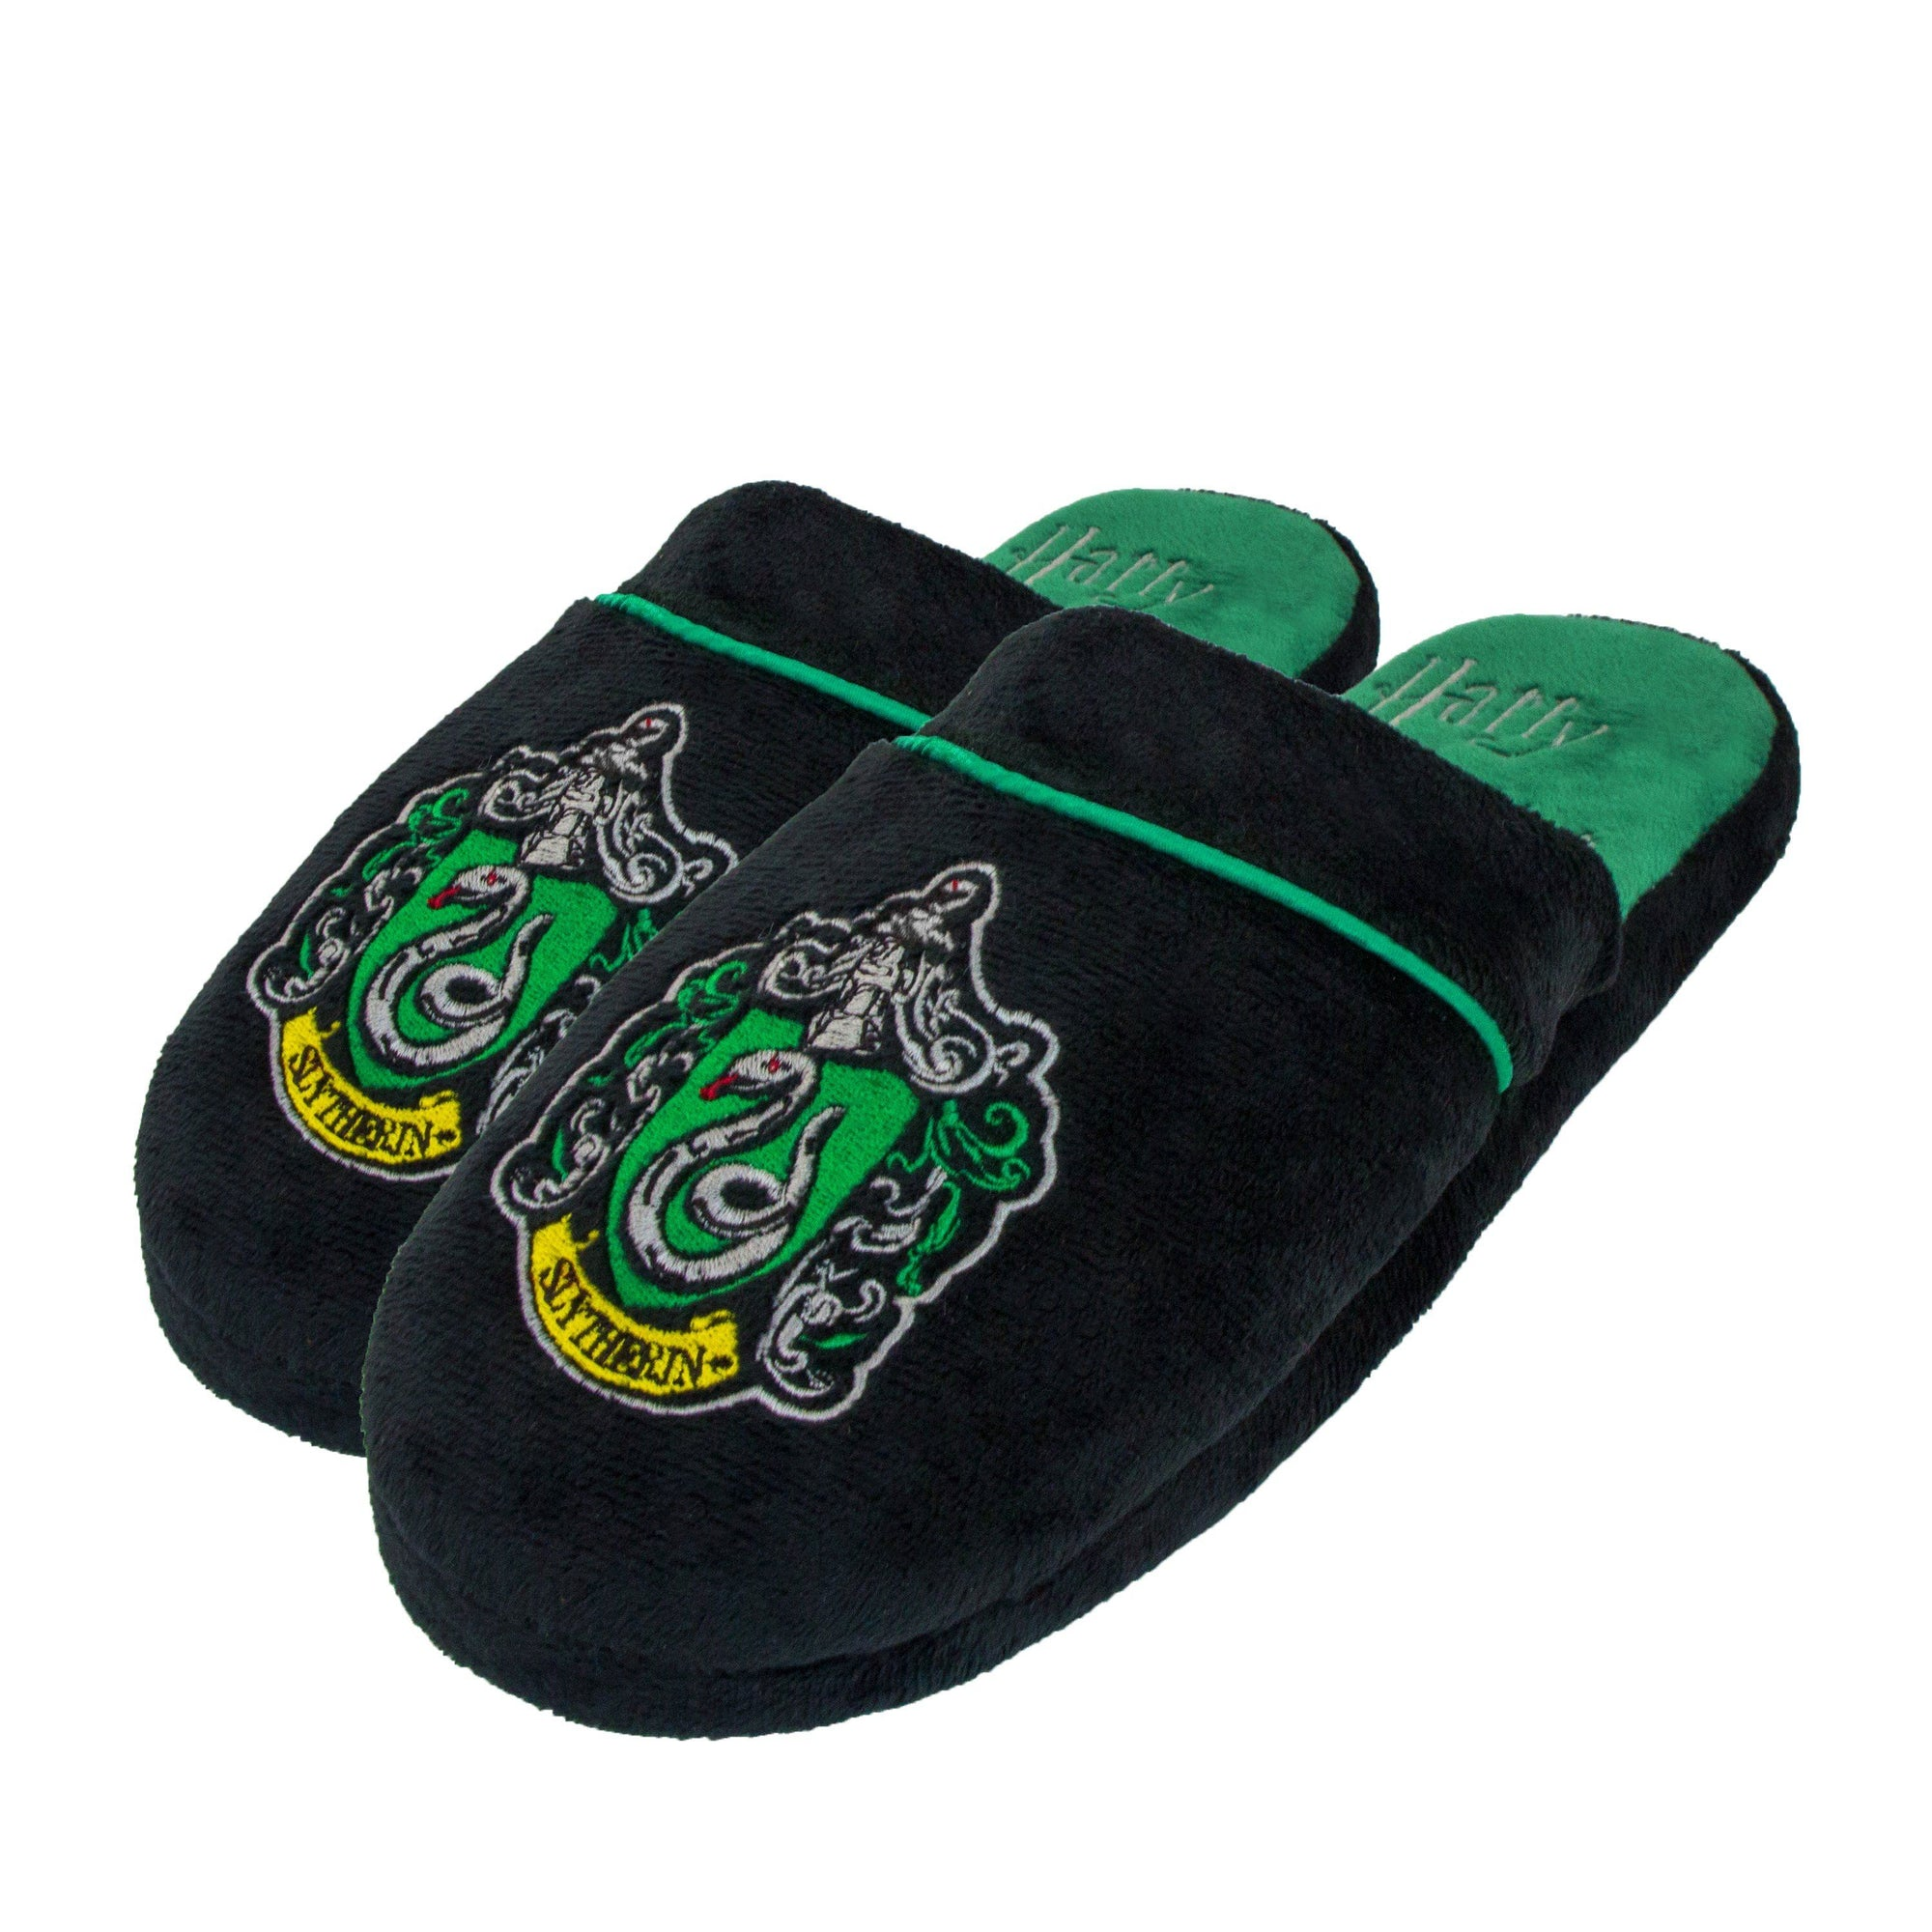 CHAUSSONS SERPENTARD - HARRY POTTER - la boutique du sorcier